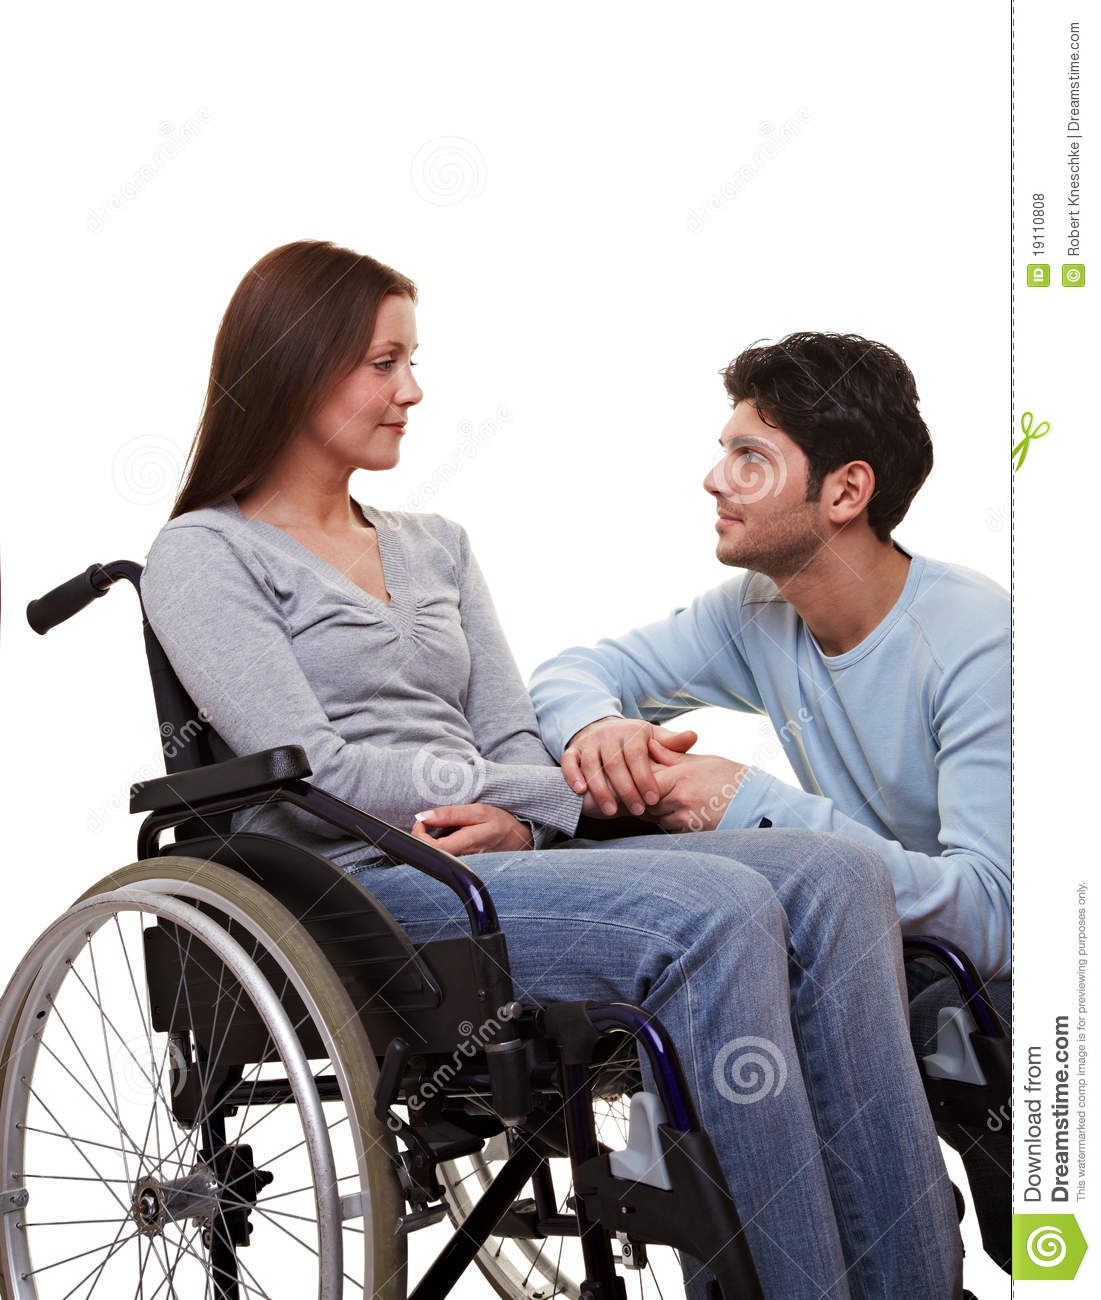 dating handicapped man Whispers4u disabled dating service trusted online since 2002 - disabled singles can find love and friendships free to register and browse advanced chat & photo search for singles near you.